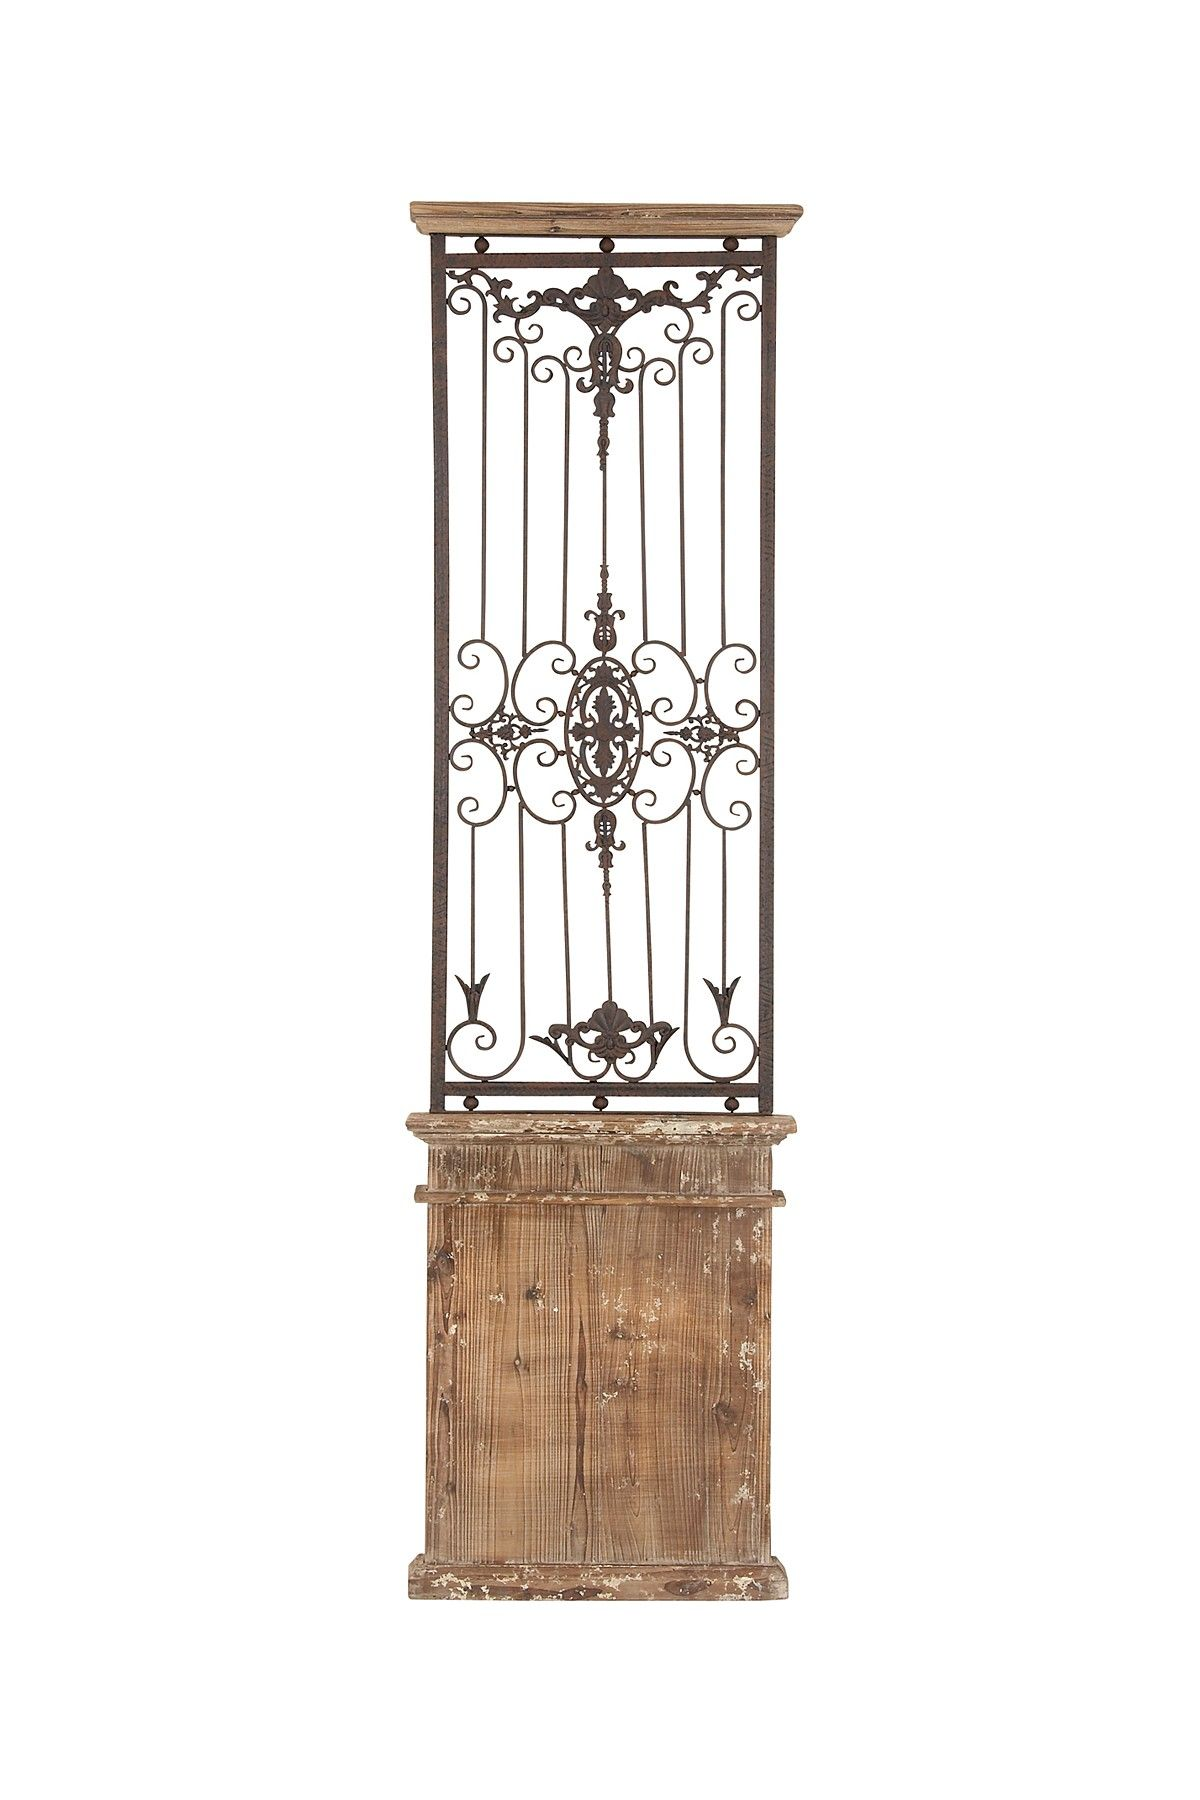 Iron And Wood Decor Coastal Living Decor Metal Wood Wall Gate  For The Home